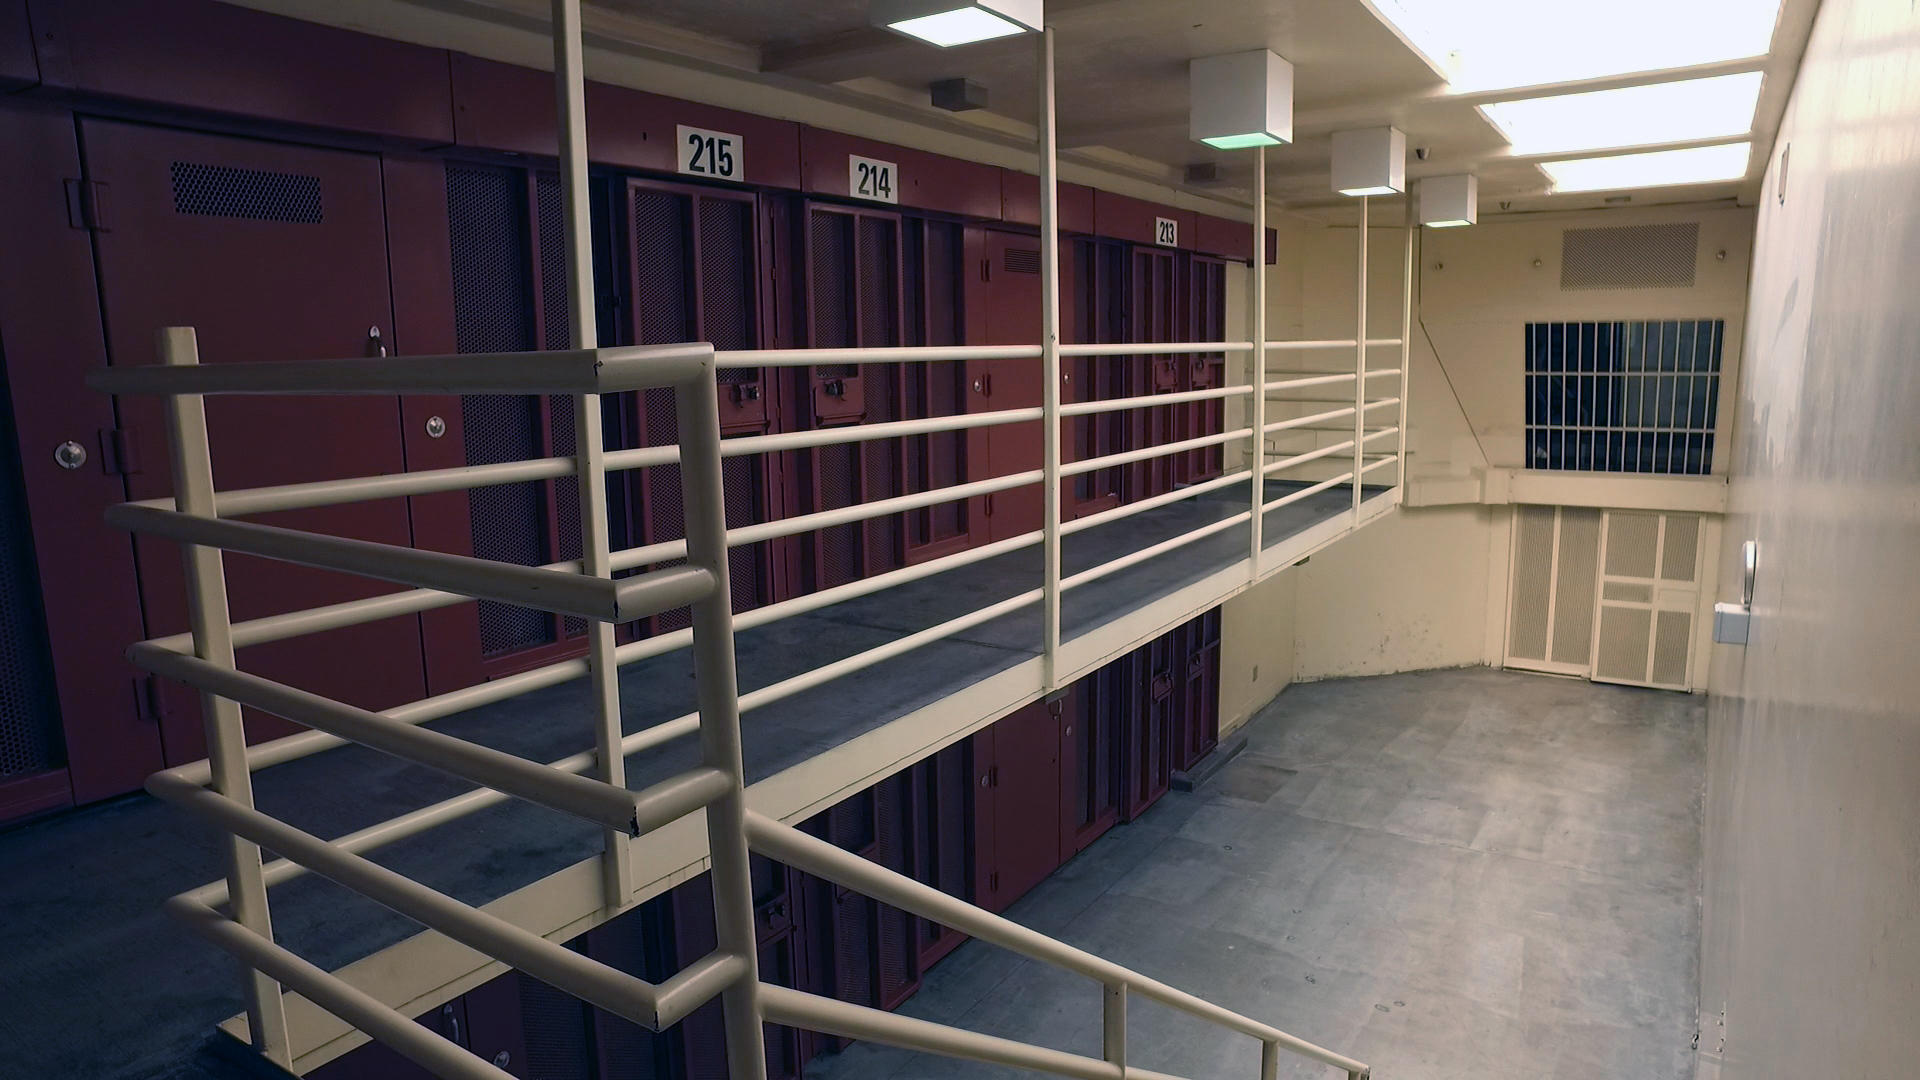 Reforming solitary confinement at an infamous California prison